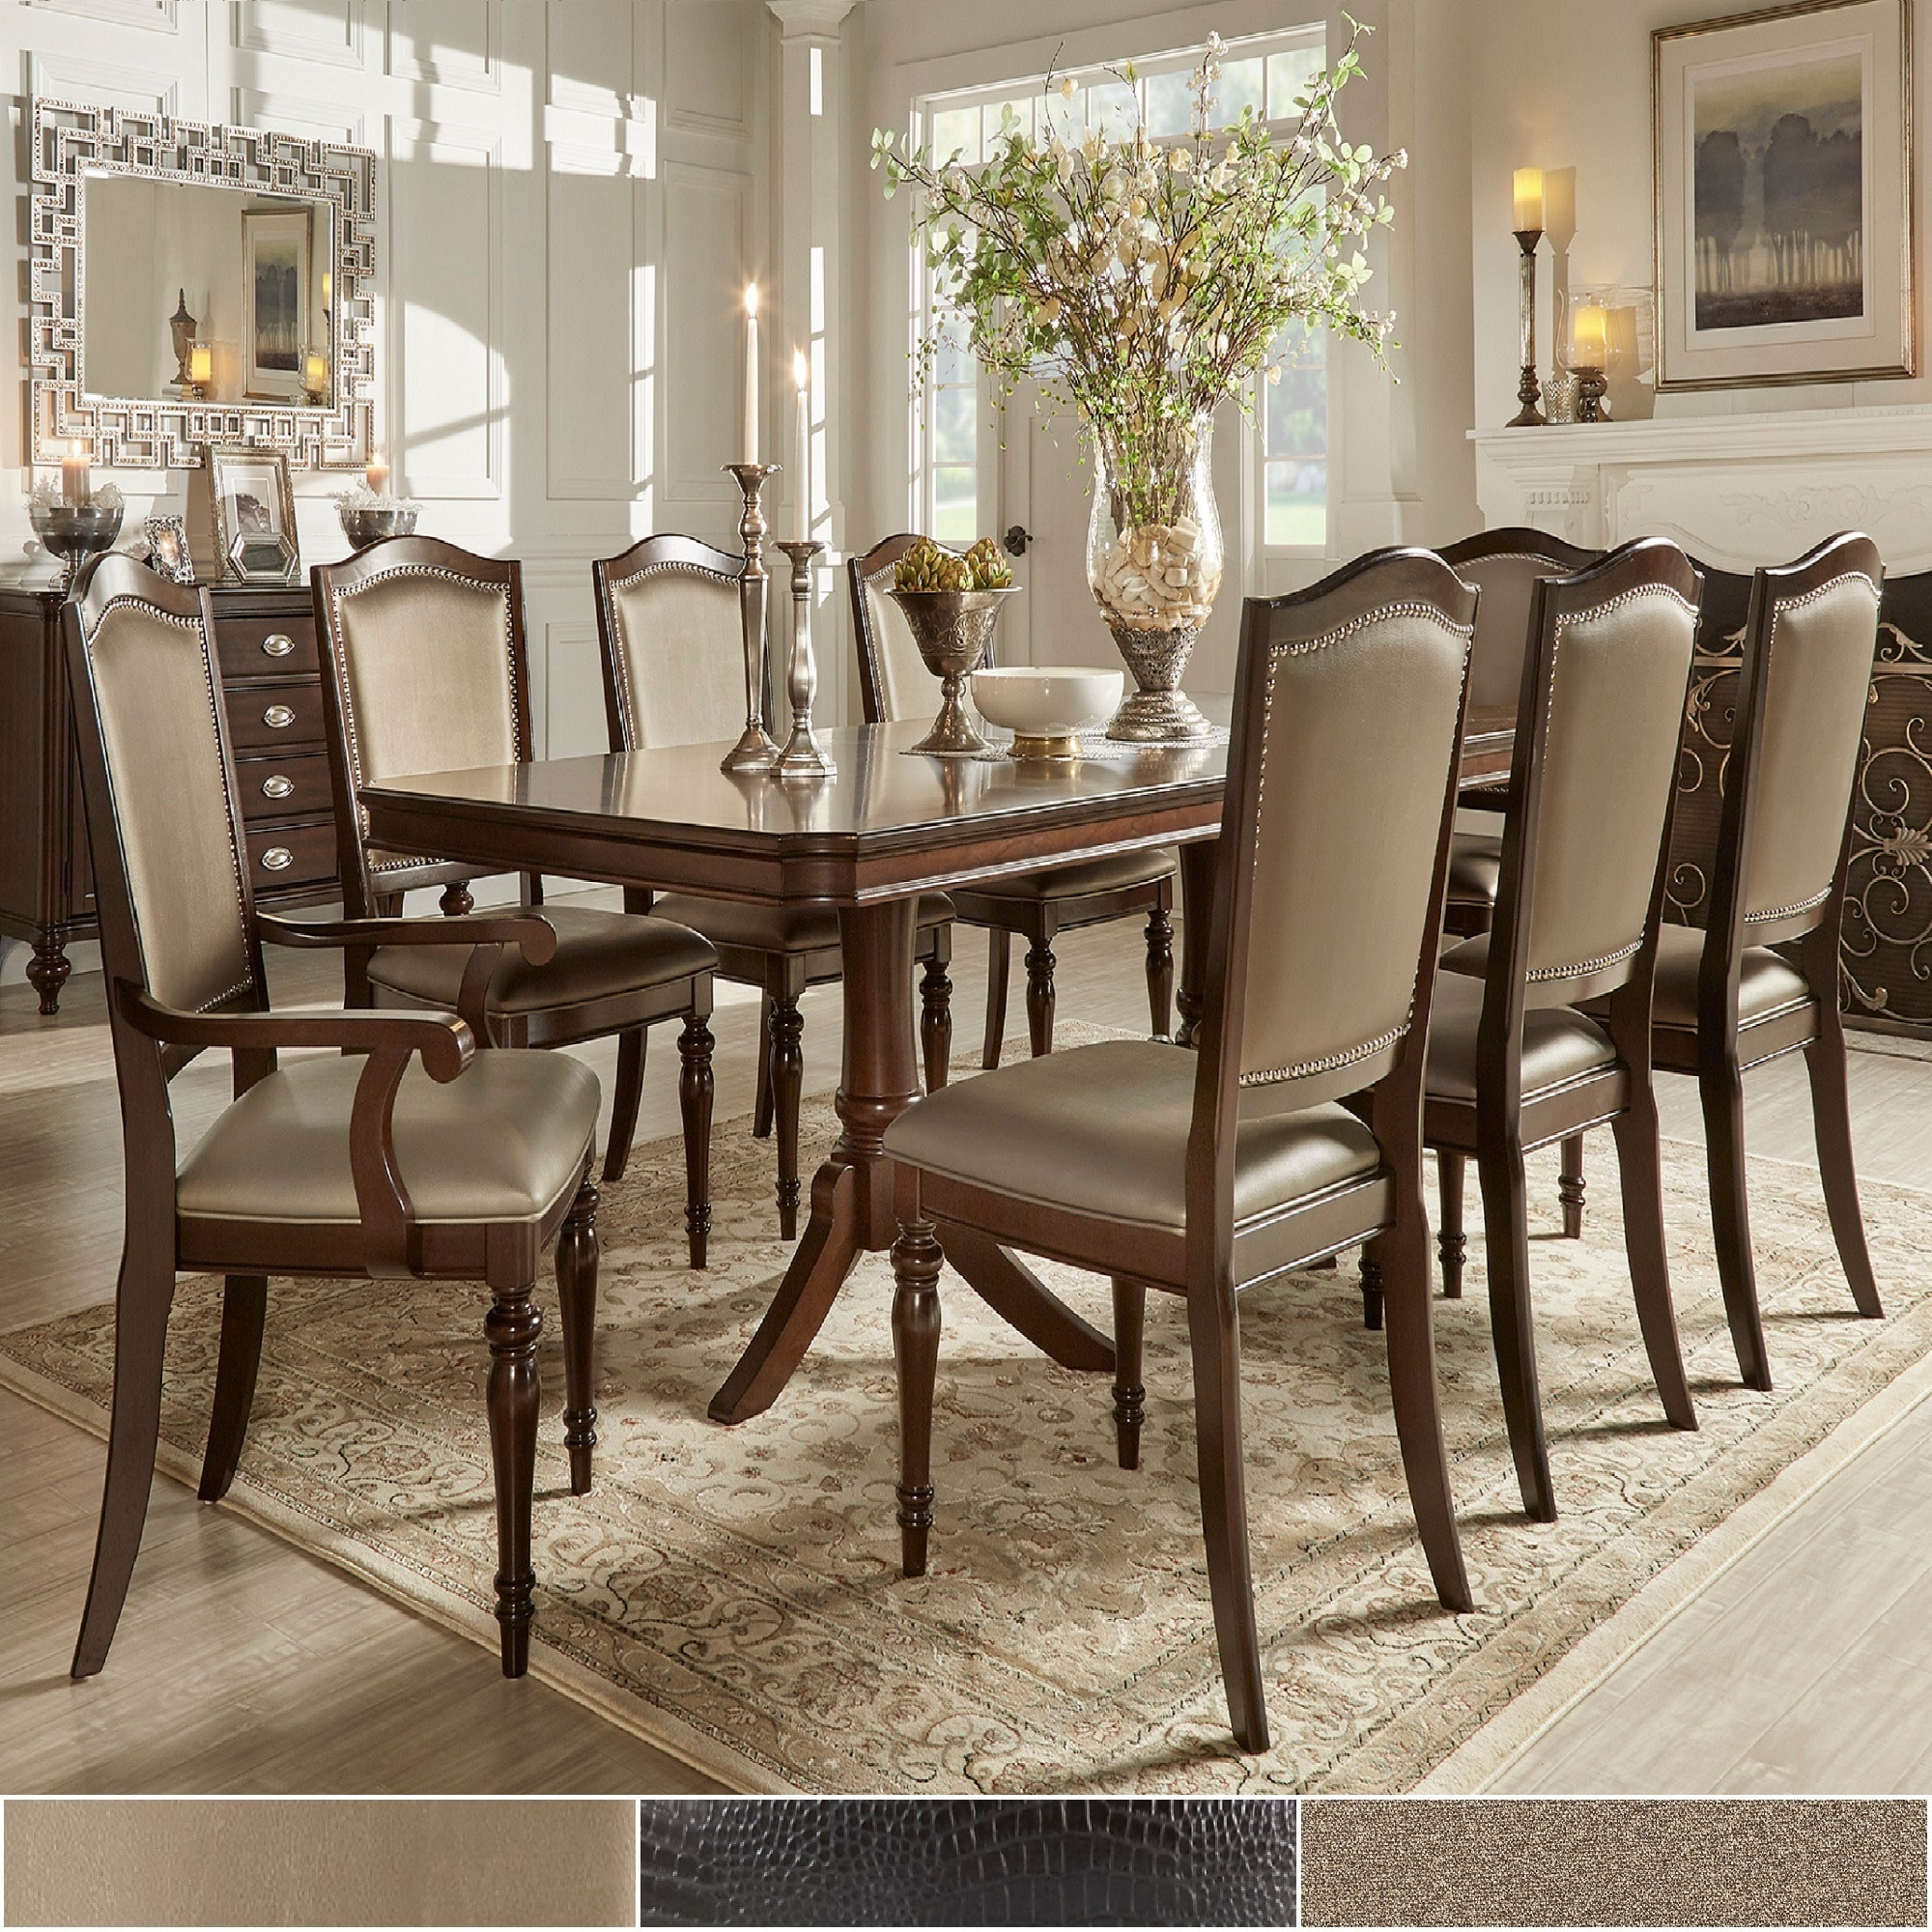 Nail Head Accent Transitional Dining